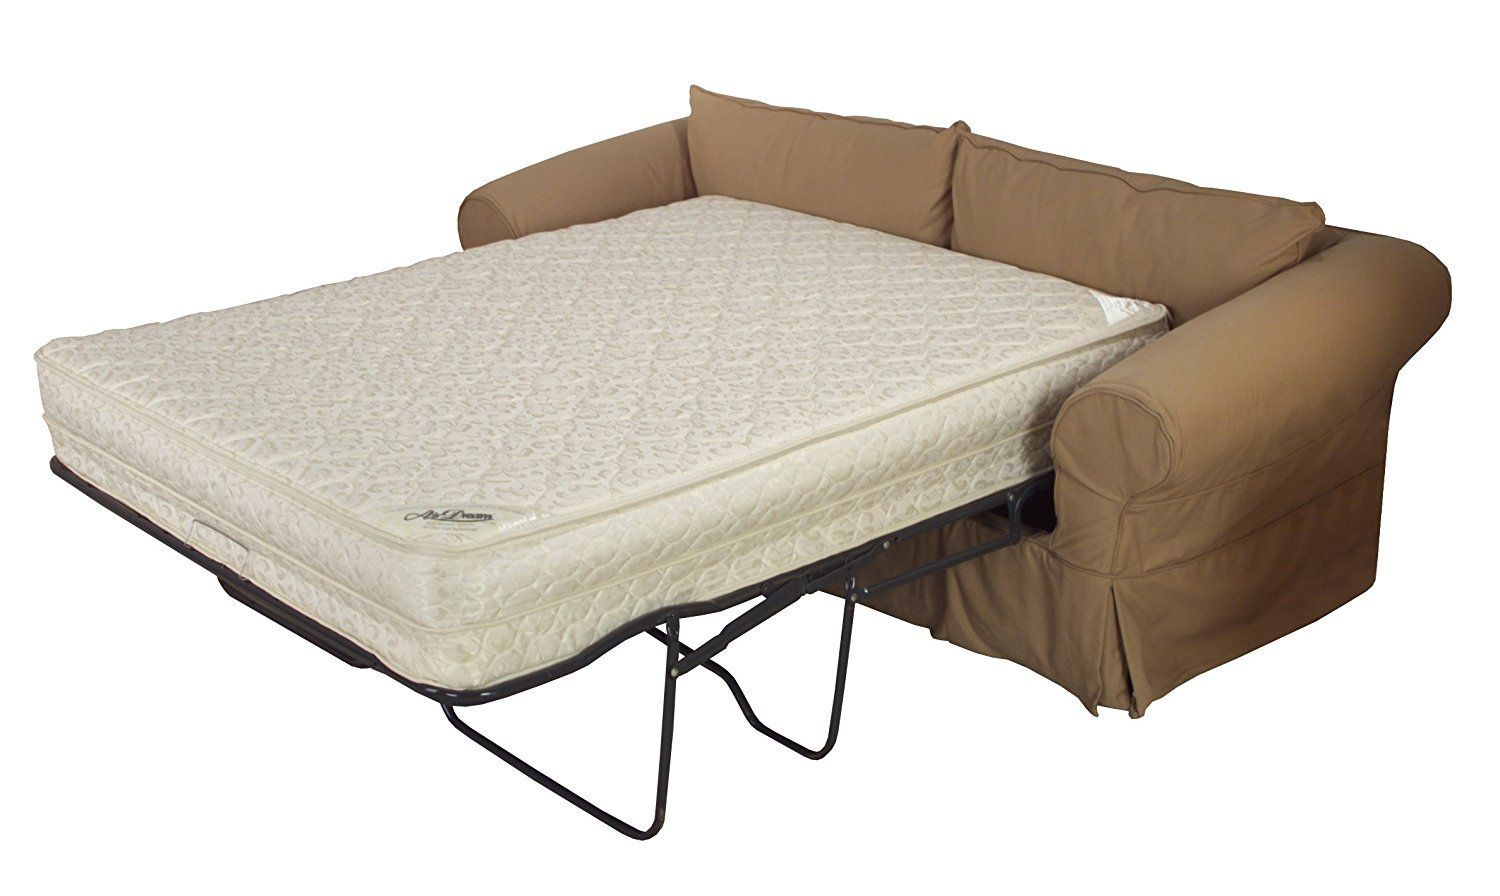 replacement bed frame for sleeper sofa sectional under 1000 bedroom awesome mattress great replacem and furniture convertible chair beds sleep